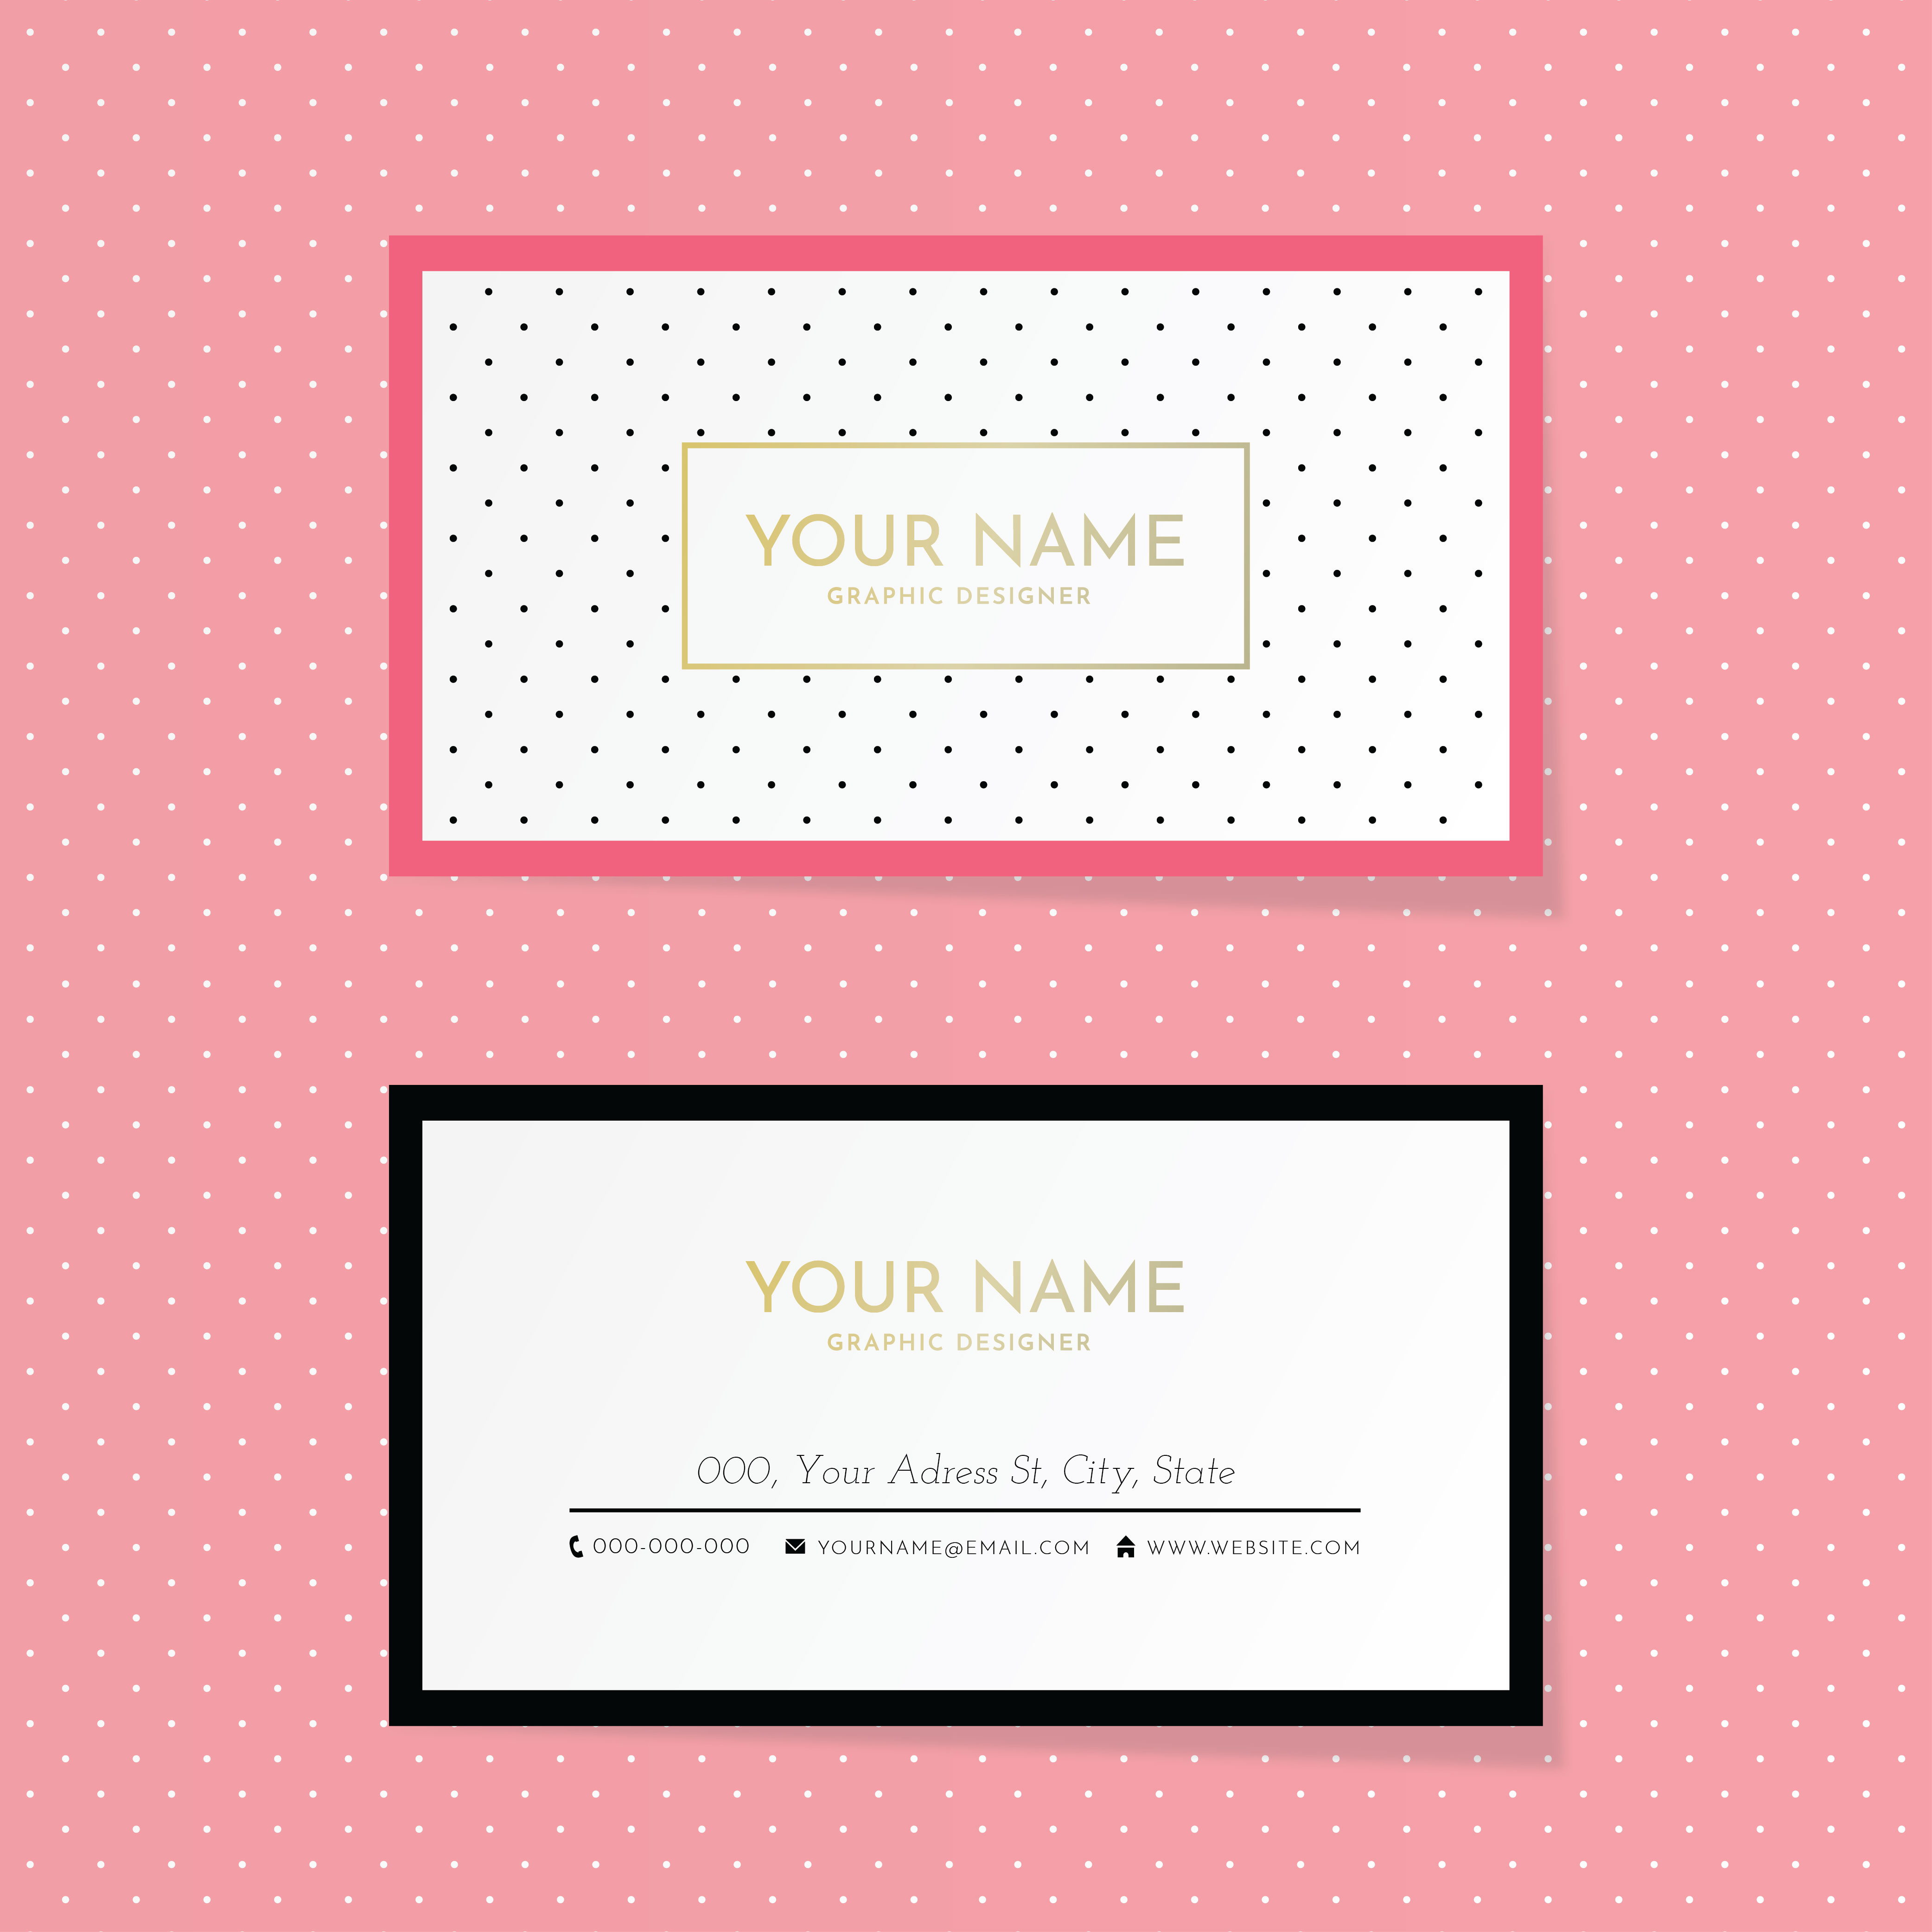 Free Vector Business Card Templates Free Downloads - Business card adobe illustrator template